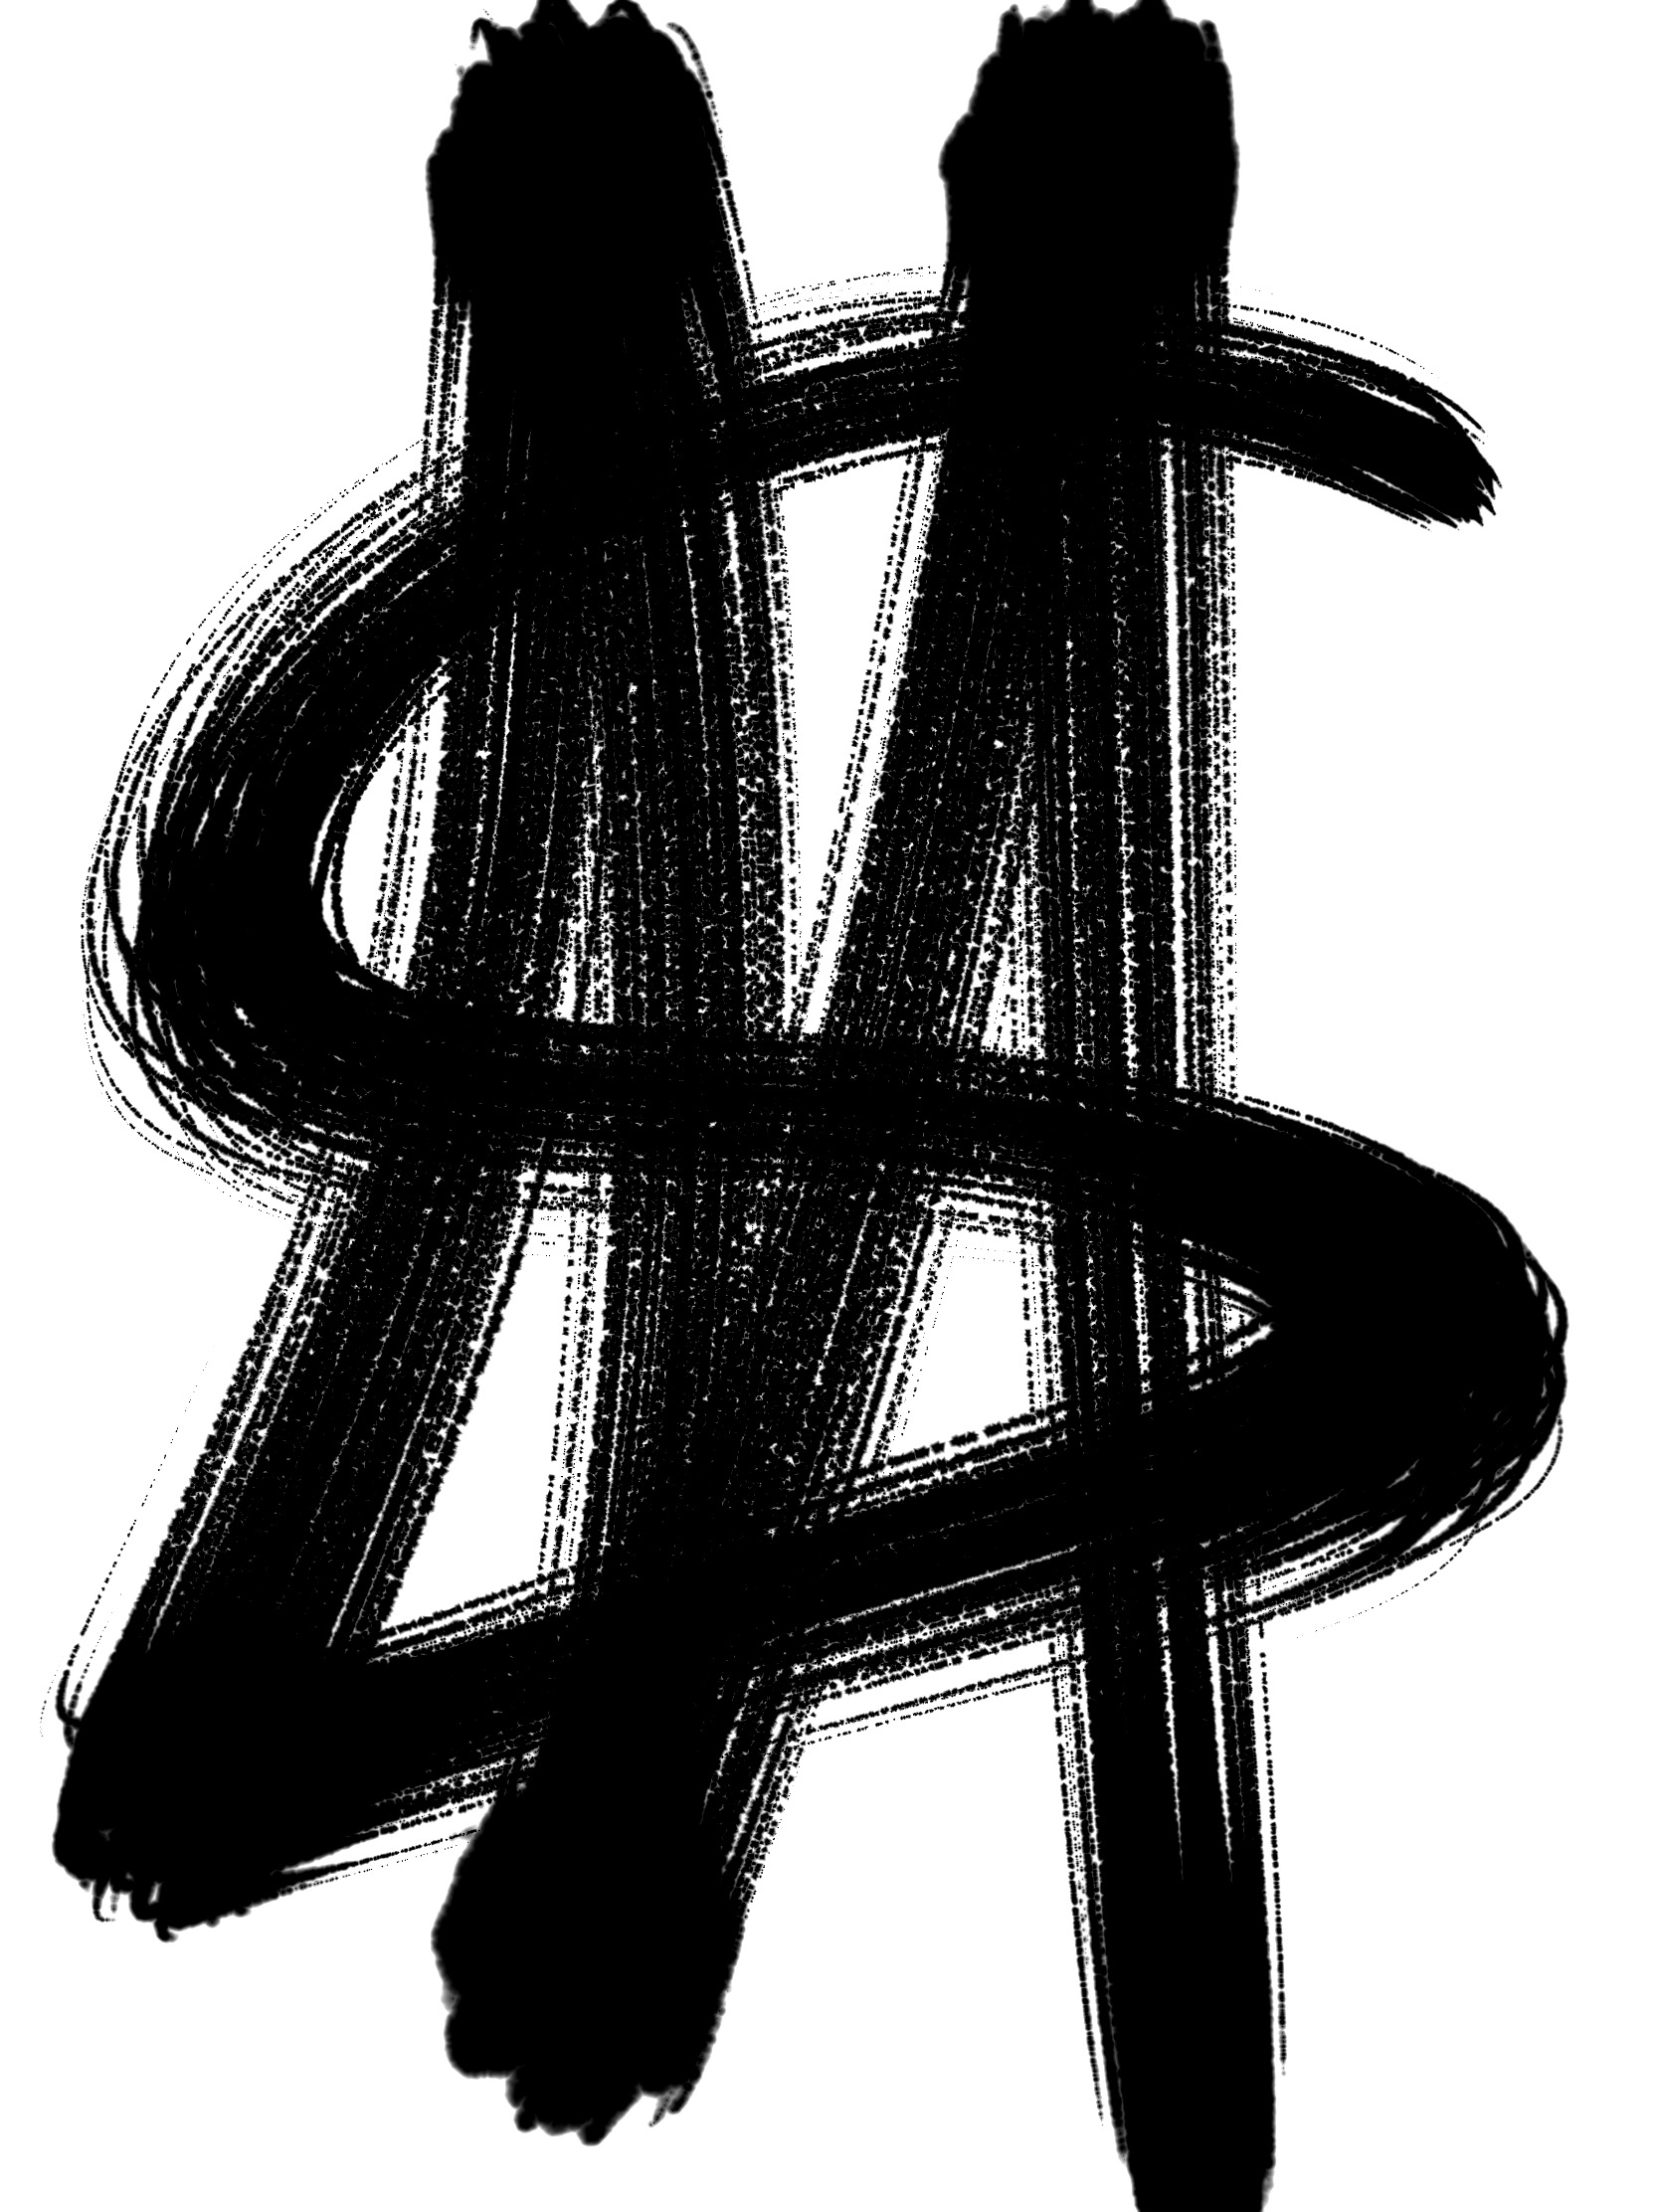 Money dollar sign abstract ERIC KIM